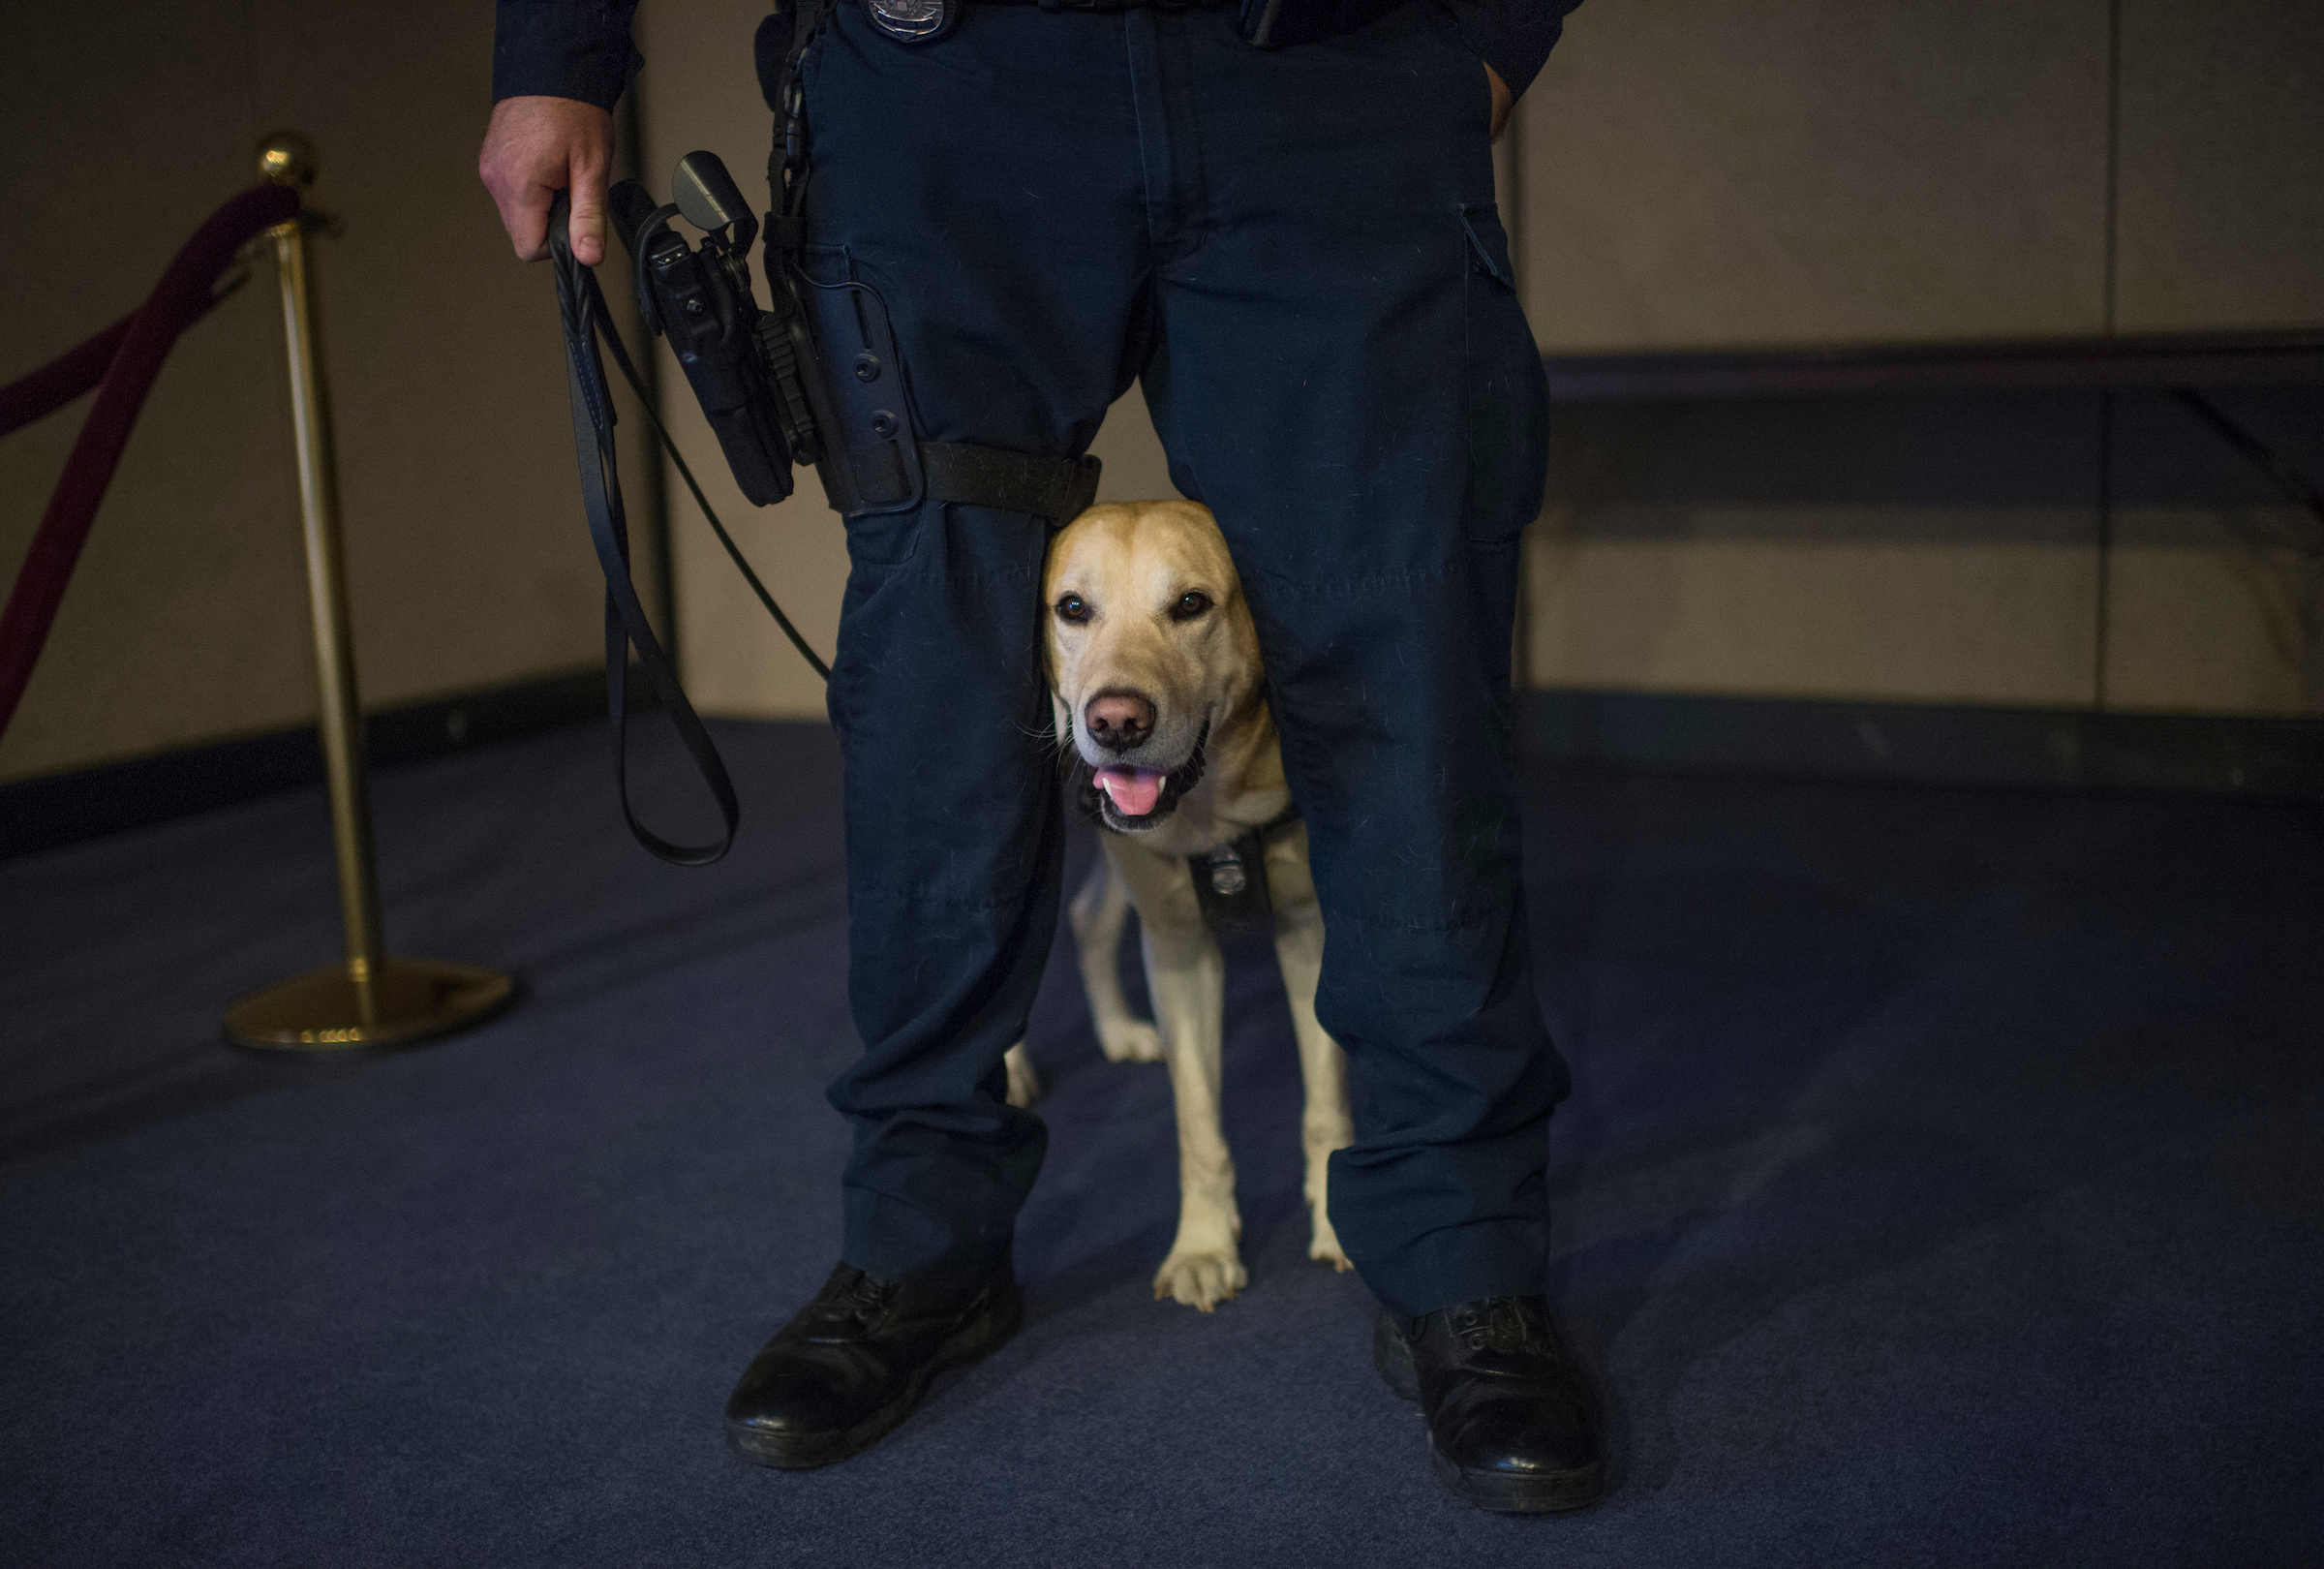 Ladley, of the Amtrak K-9 explosive detection team, prepares for an explosive detection demonstration Wednesday at a Senate Commerce Committee markup of legislation known as the Surface Transportation and Maritime Security Act. (Tom WIlliams/CQ Roll Call)